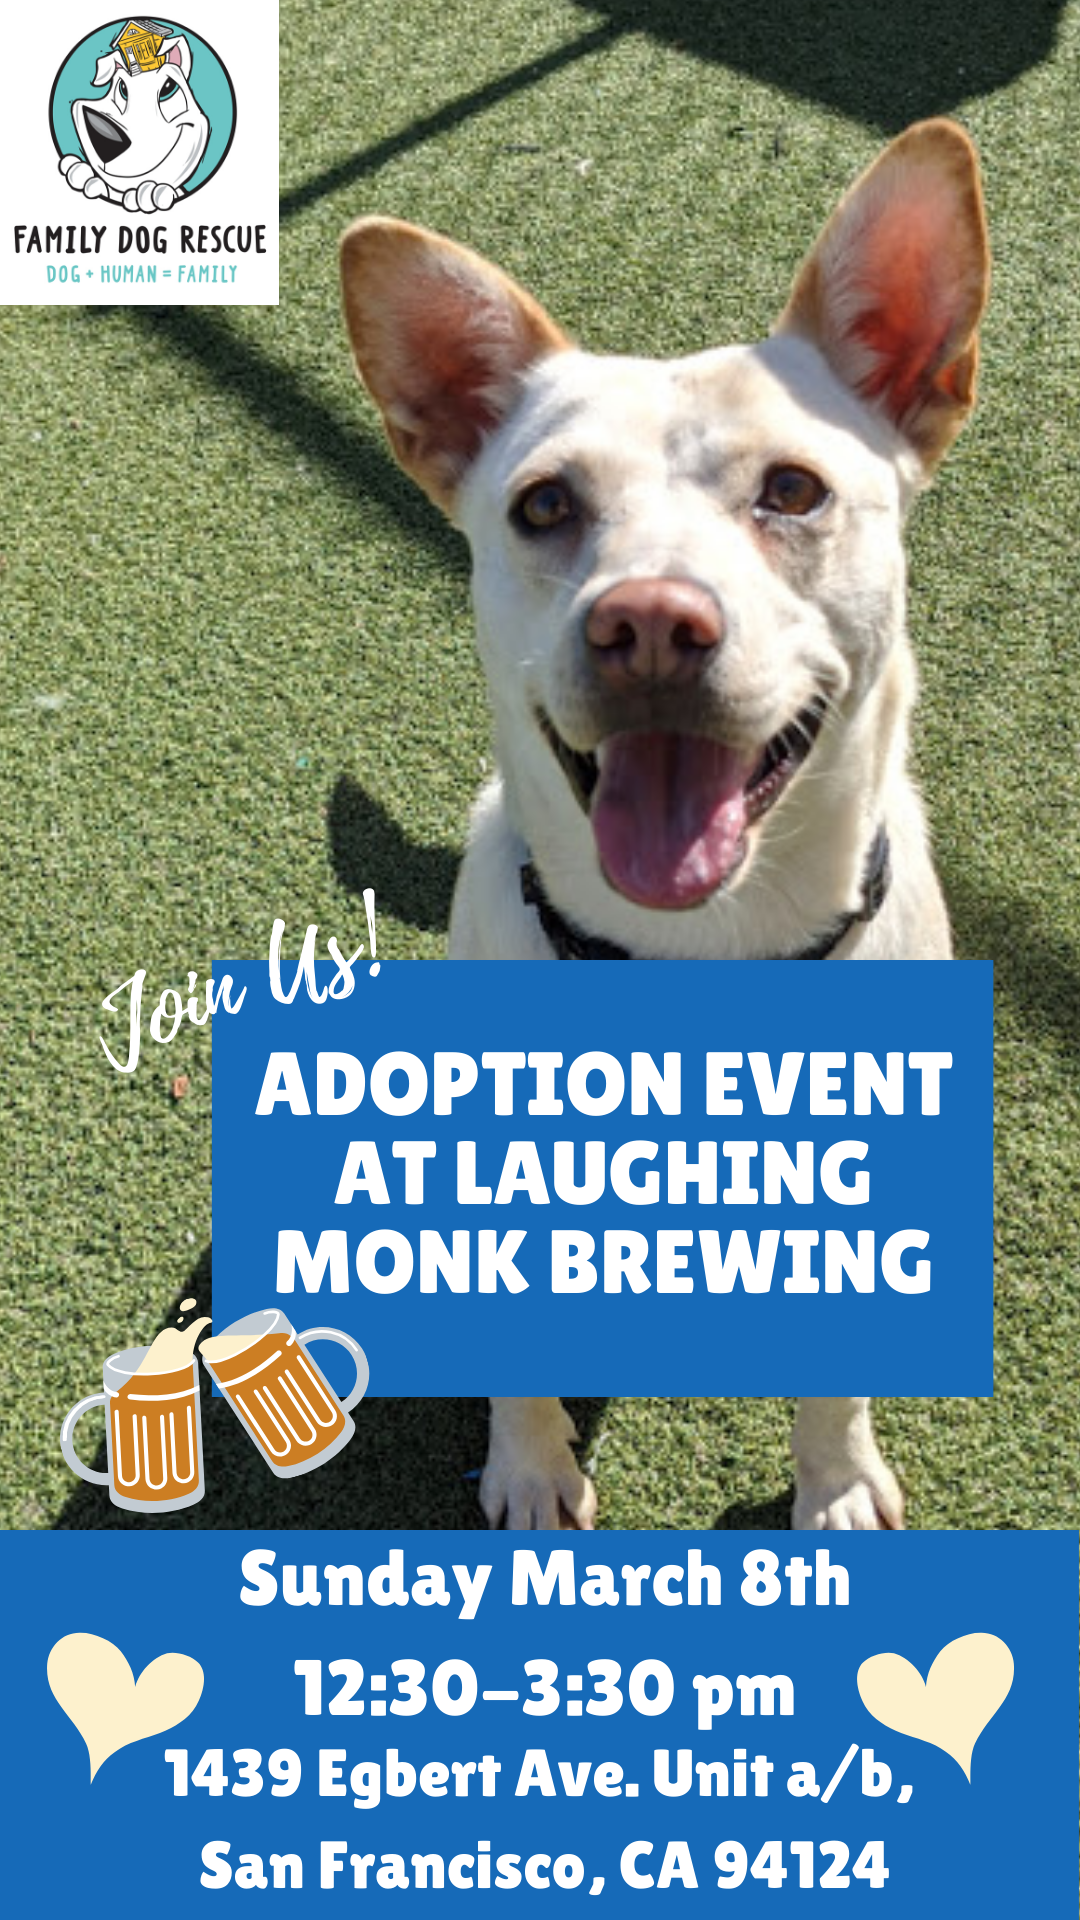 Adoption Event at Laughing Monk Brewing @ Laughing Monk Brewing